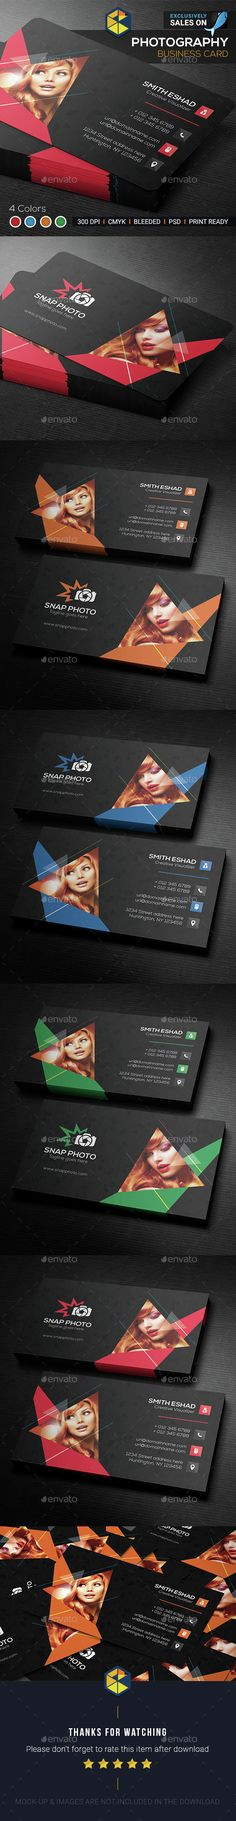 Photography Business Card Template PSD. Download here: http://graphicriver.net/item/photography-business-card/15010019?ref=ksioks